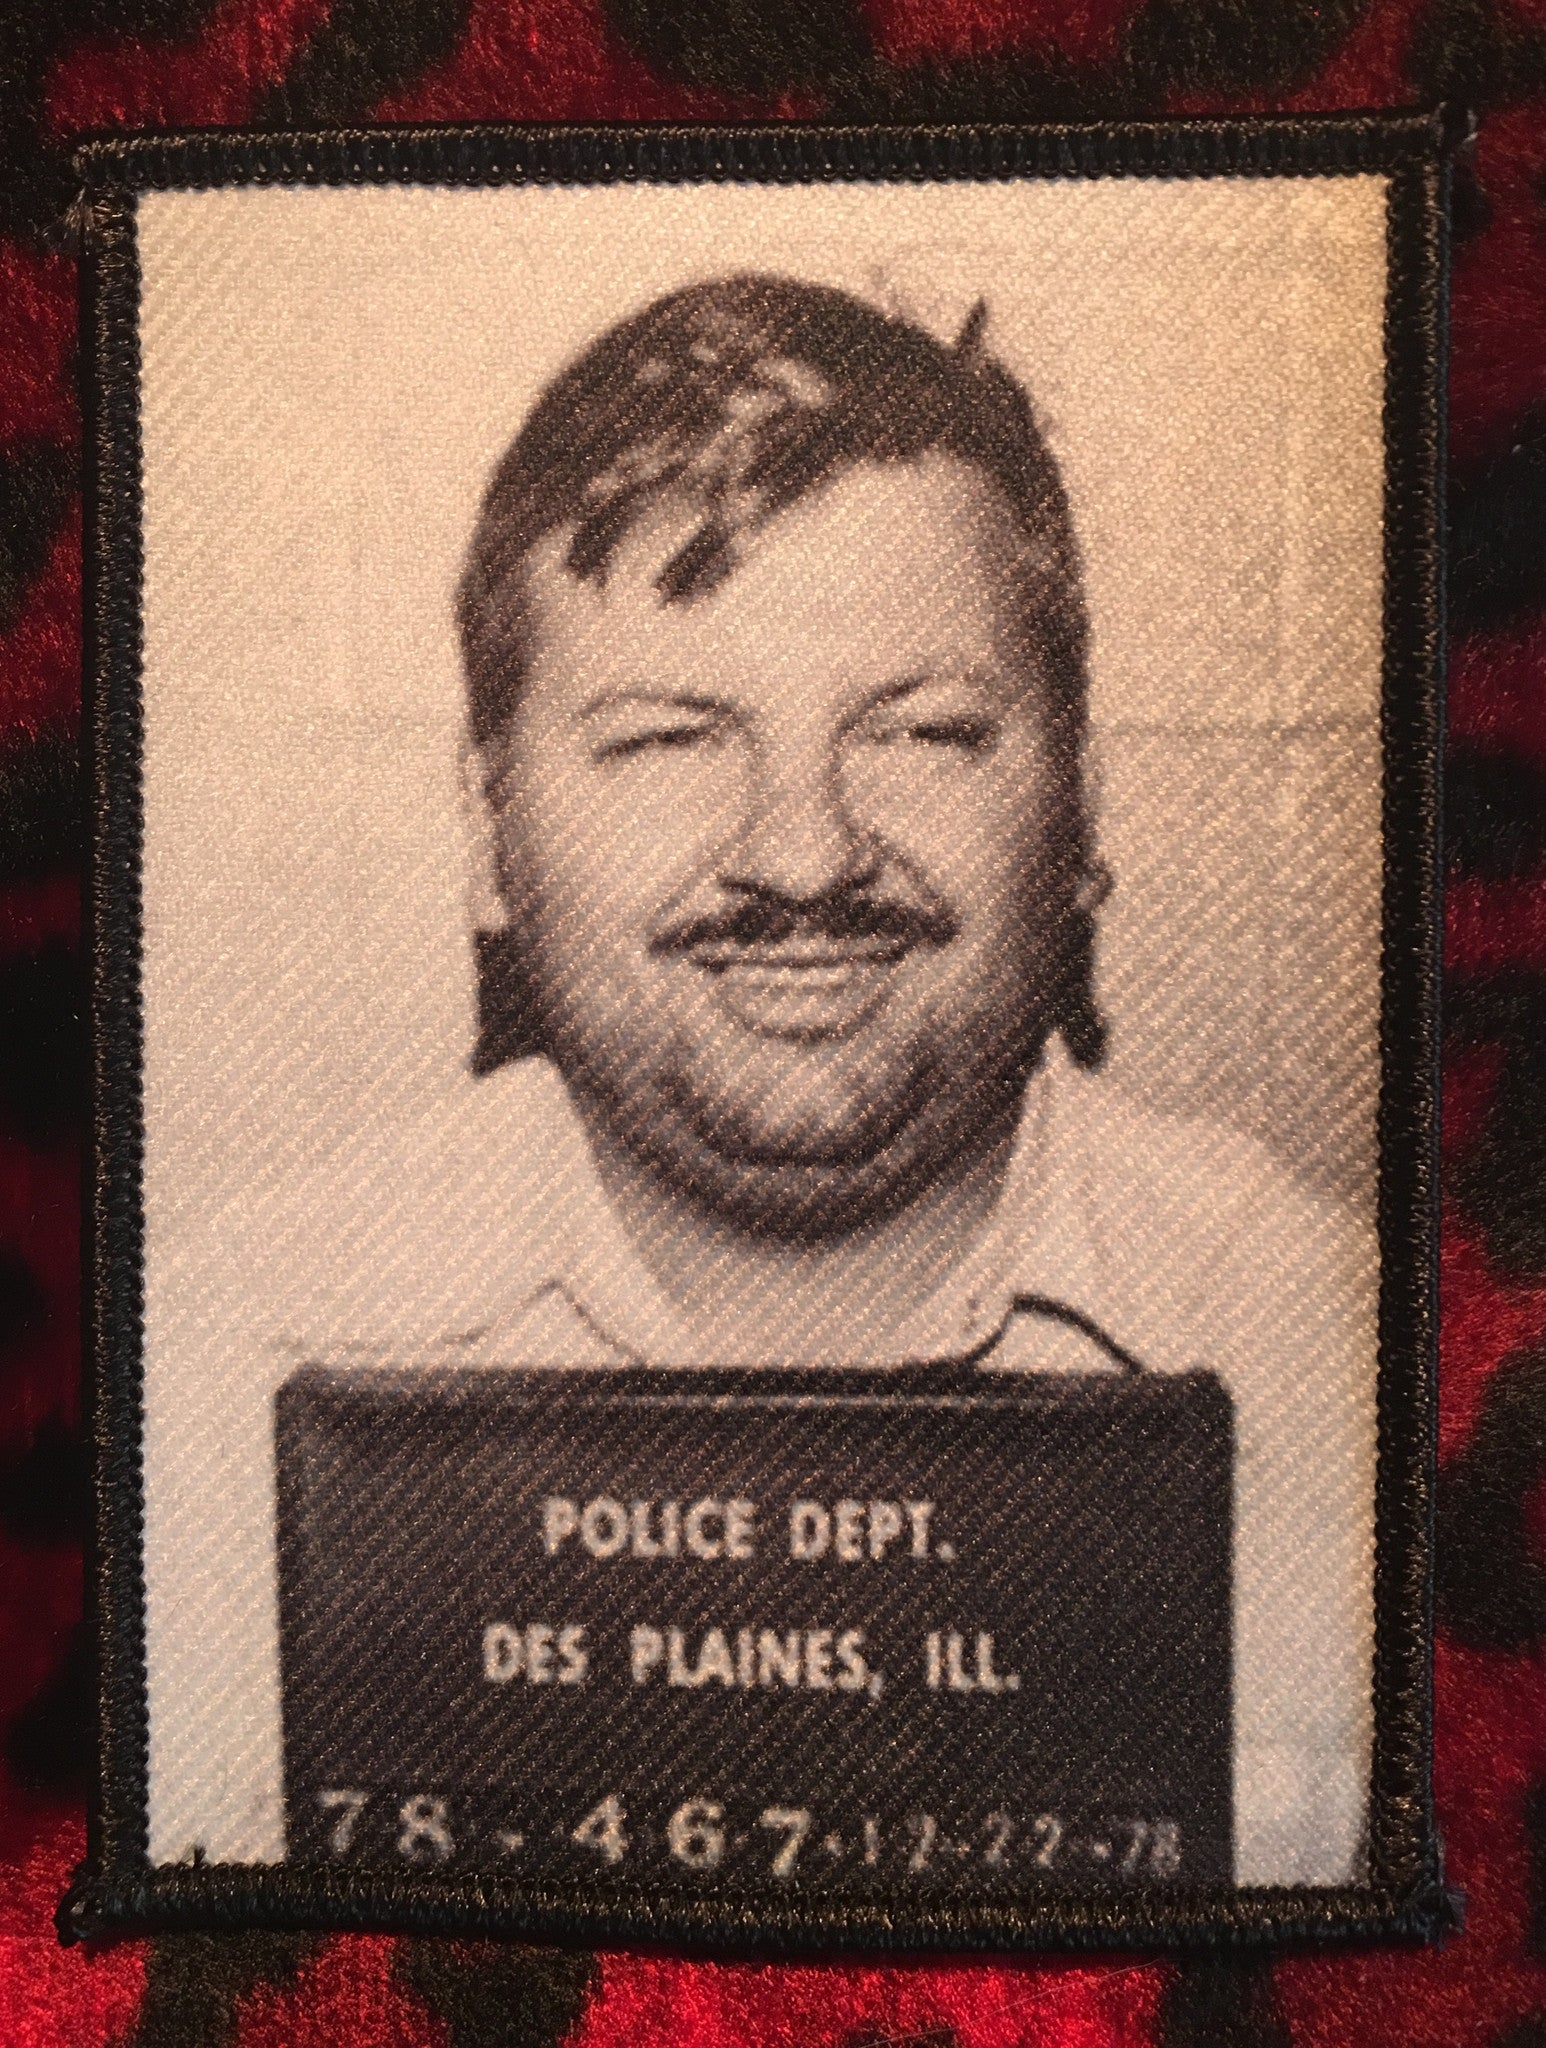 John Wayne Gacy Prison Photo Patch